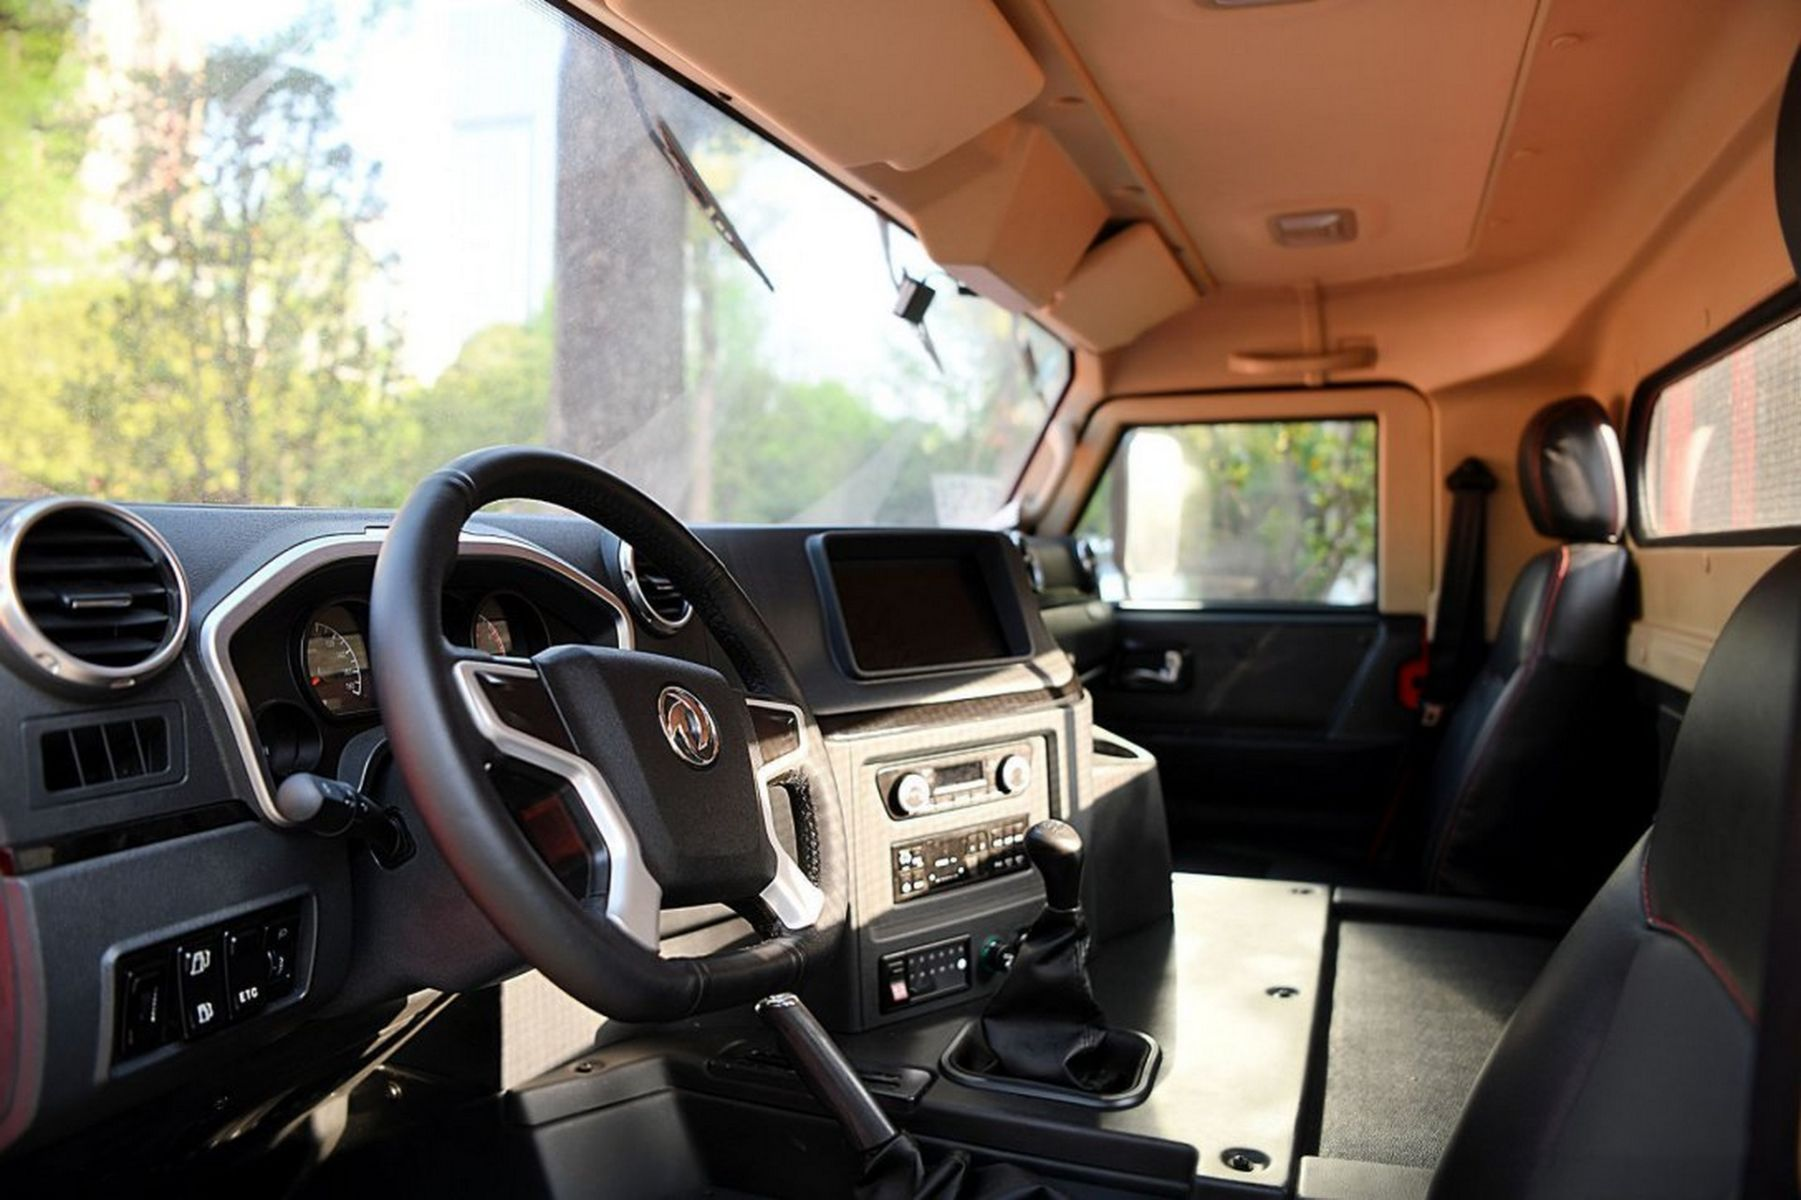 dongfeng warrior m50 interior painel